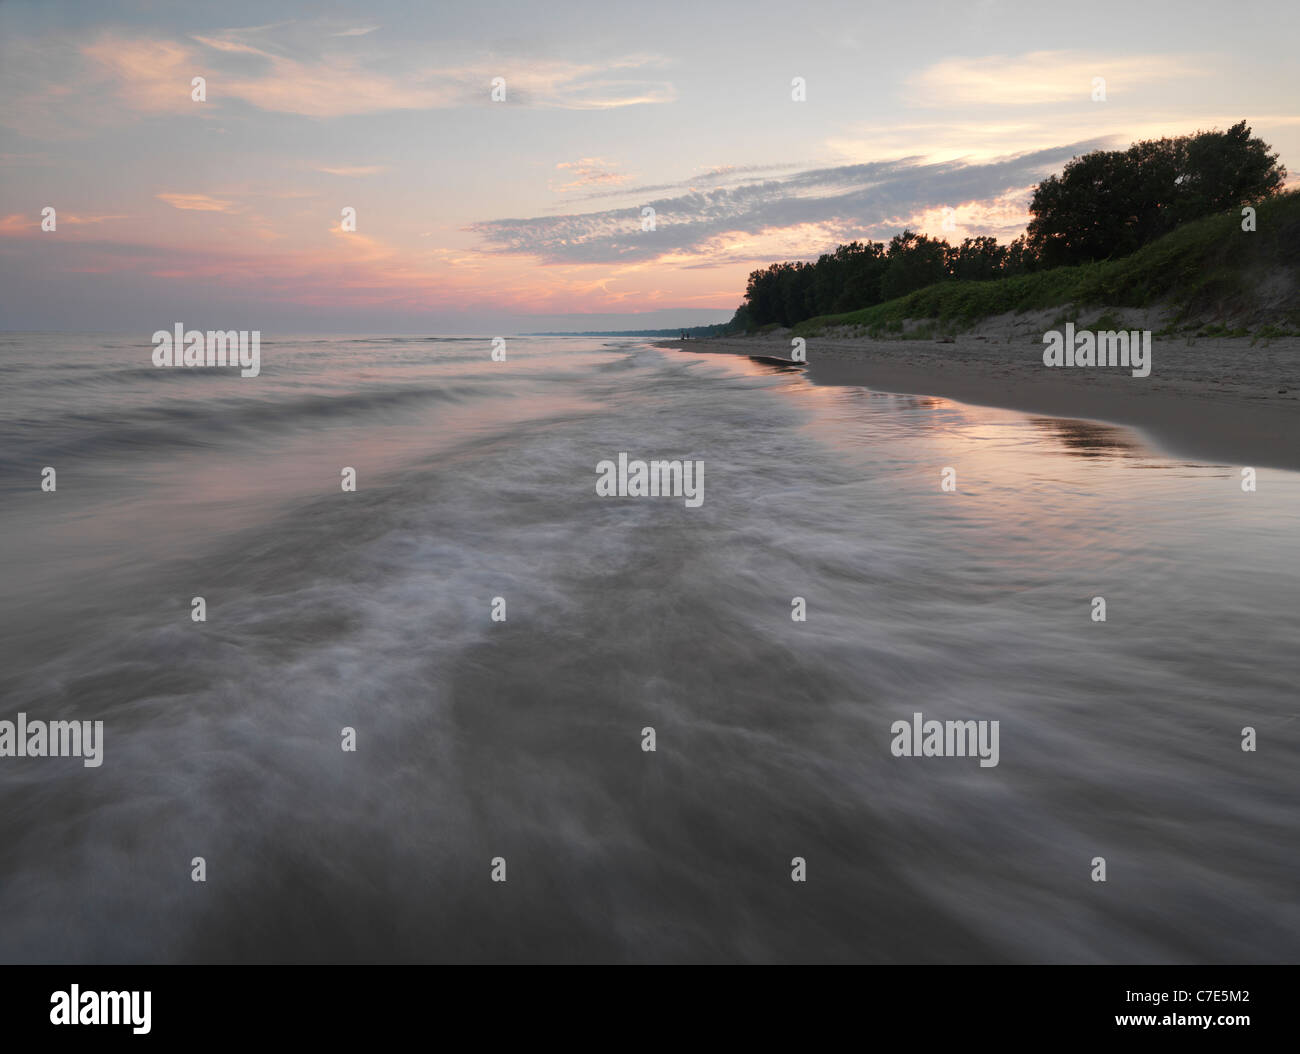 Lake Erie Long Point Beach at sunset, Ontario, Canada - Stock Image